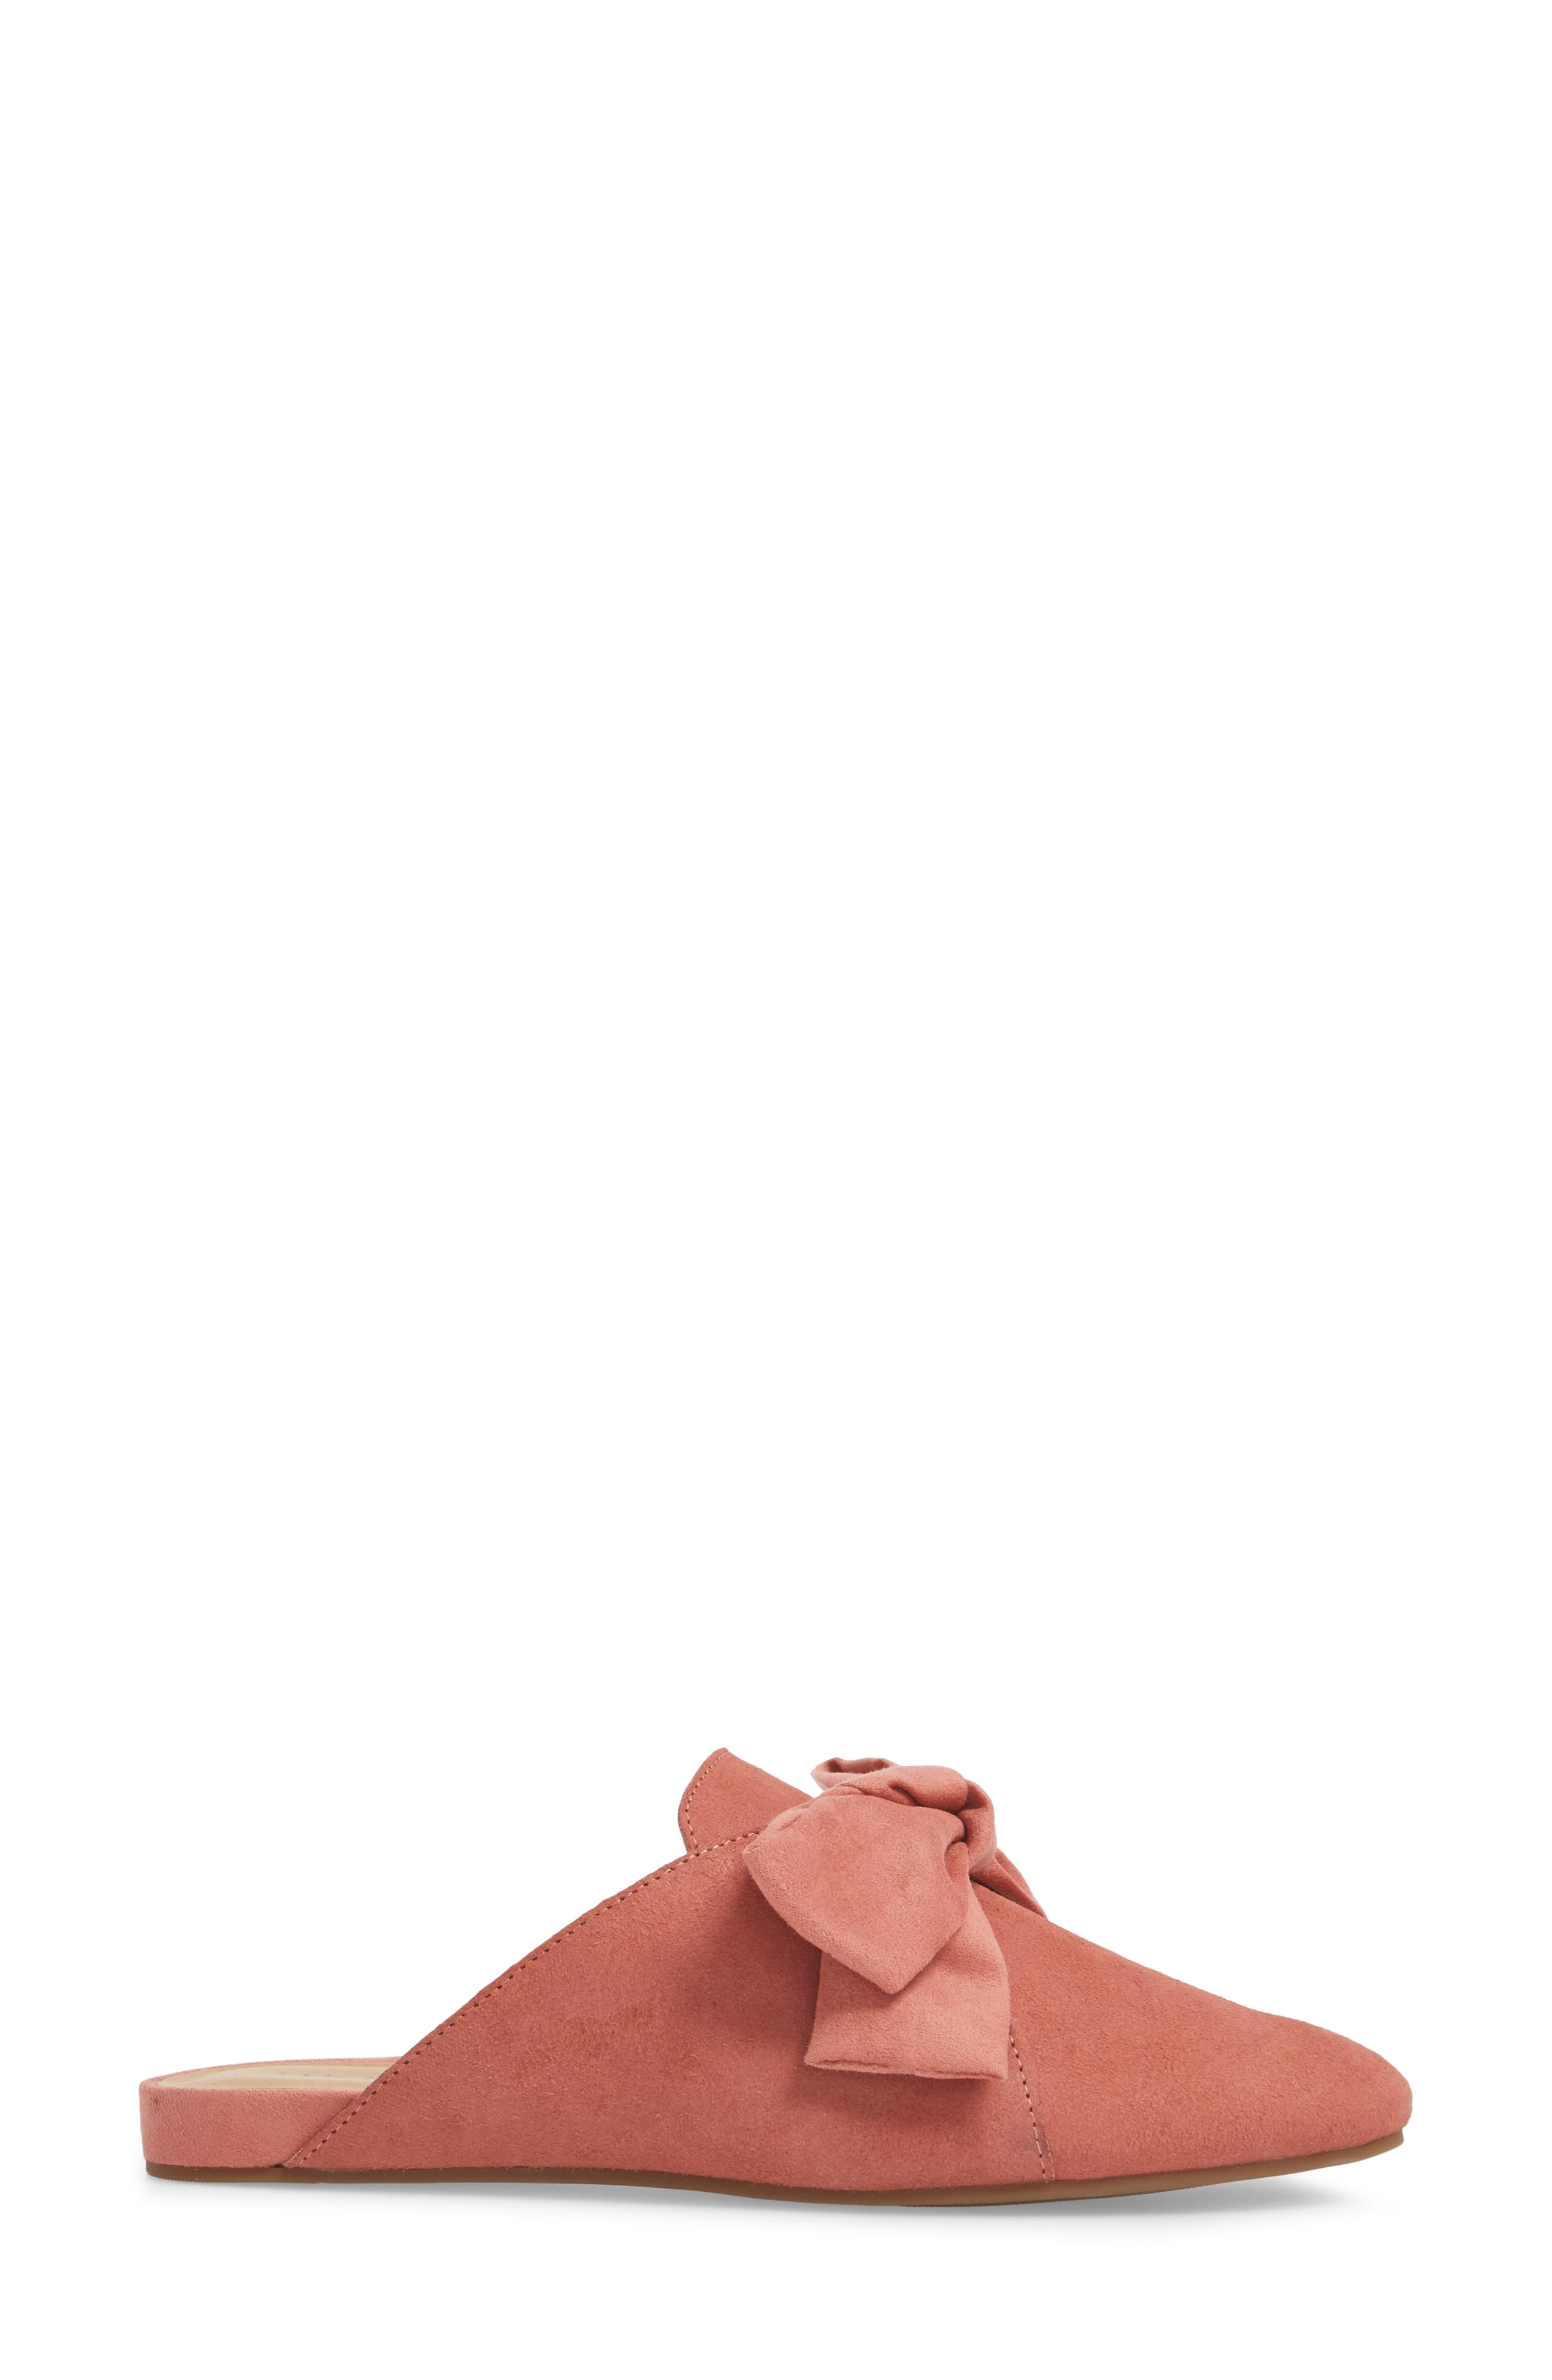 Florean Bow Loafer Mule,                             Alternate thumbnail 3, color,                             Canyon Rose Leather